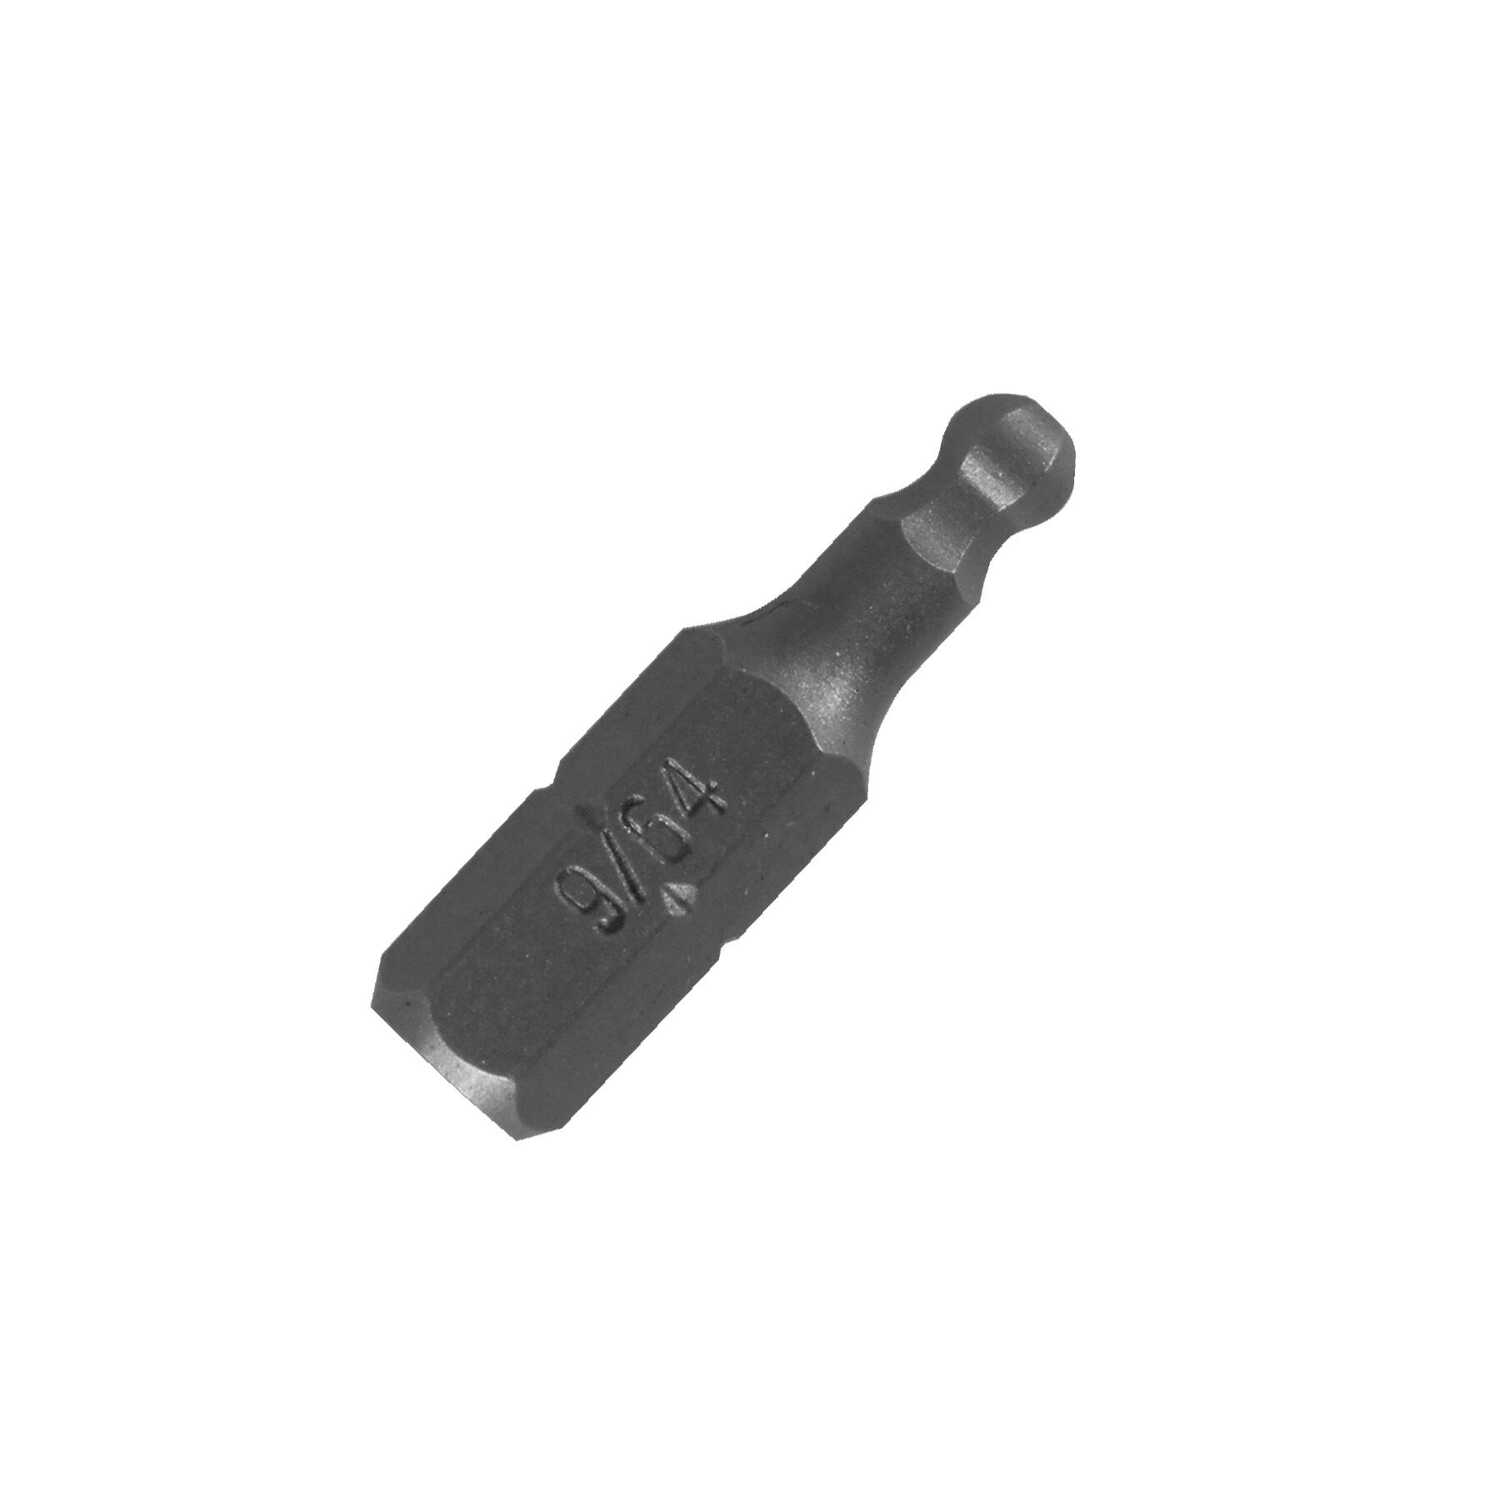 Best Way Tools  Ball Hex  1/4 in.  x 1 in. L Insert Bit  Carbon Steel  1/4 in. Ball Hex Shank  1 pc.